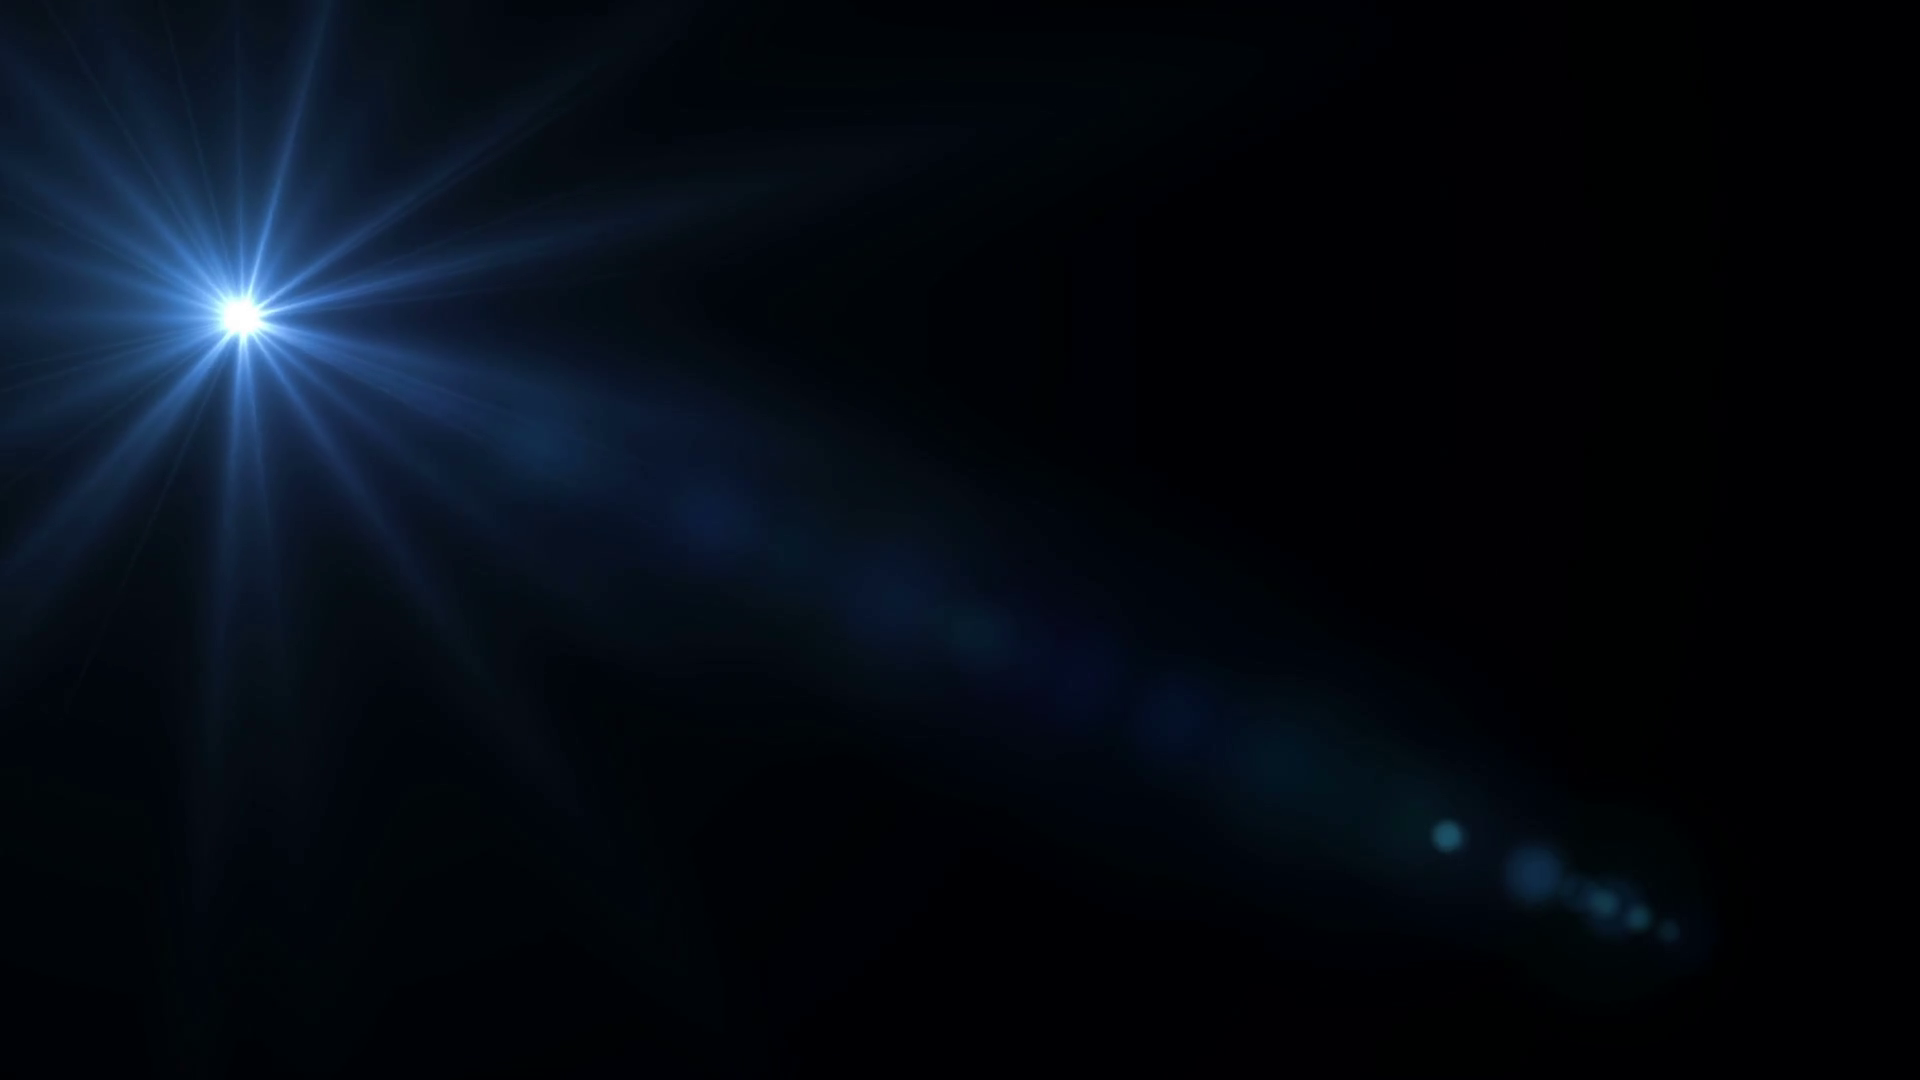 Flash Light Flare Theme In Black Background Hp Ichyvx Thumbnail Full01 Luciano Janitorial Services